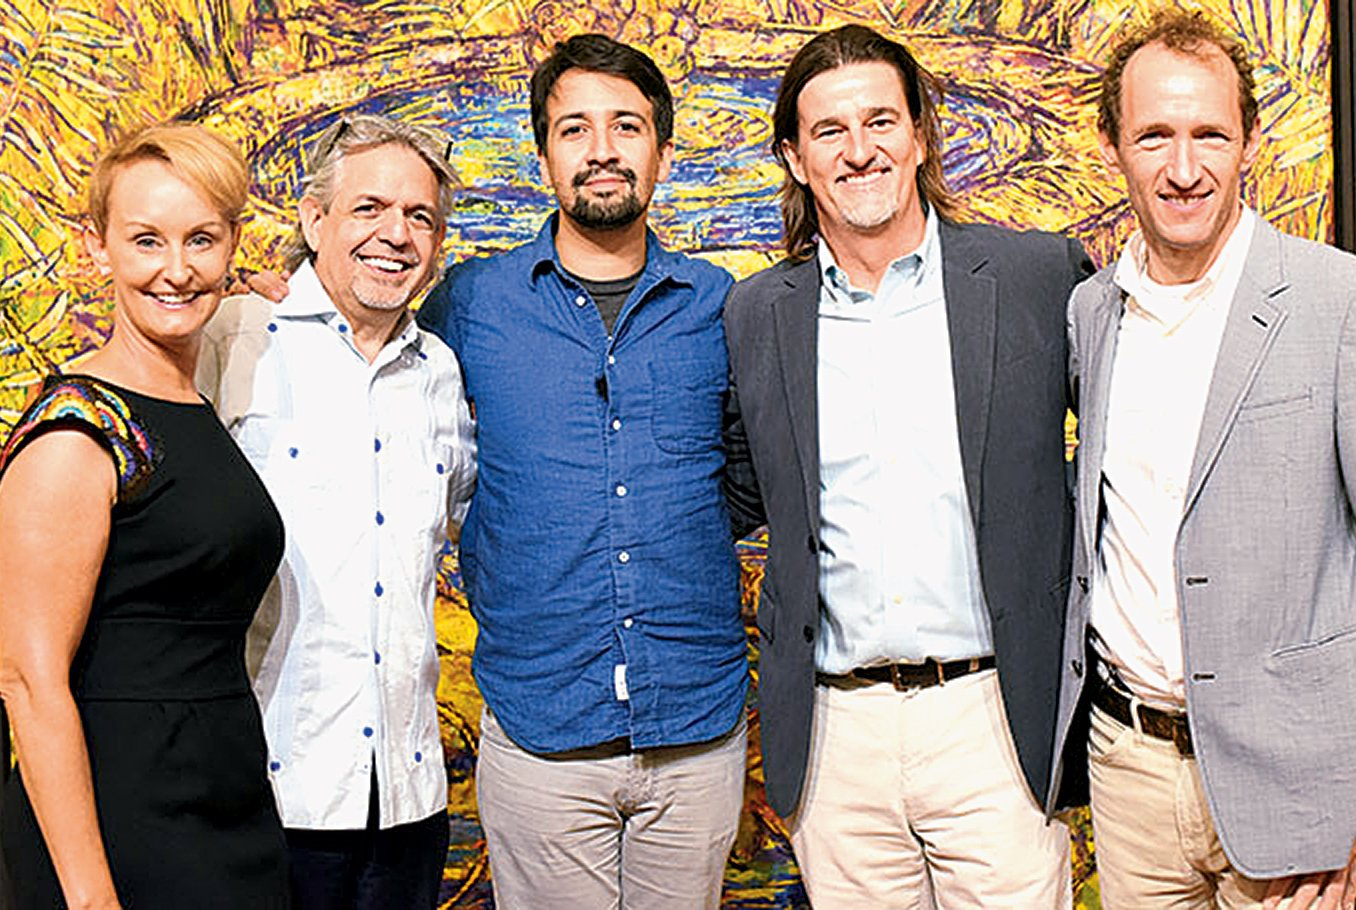 From left: Kristin Ehrgood, Luis Miranda, Lin-Manuel Miranda, Vadim Nikitine, and Jeffrey Seller. Photograph courtesy of the Flamboyan Arts Fund.